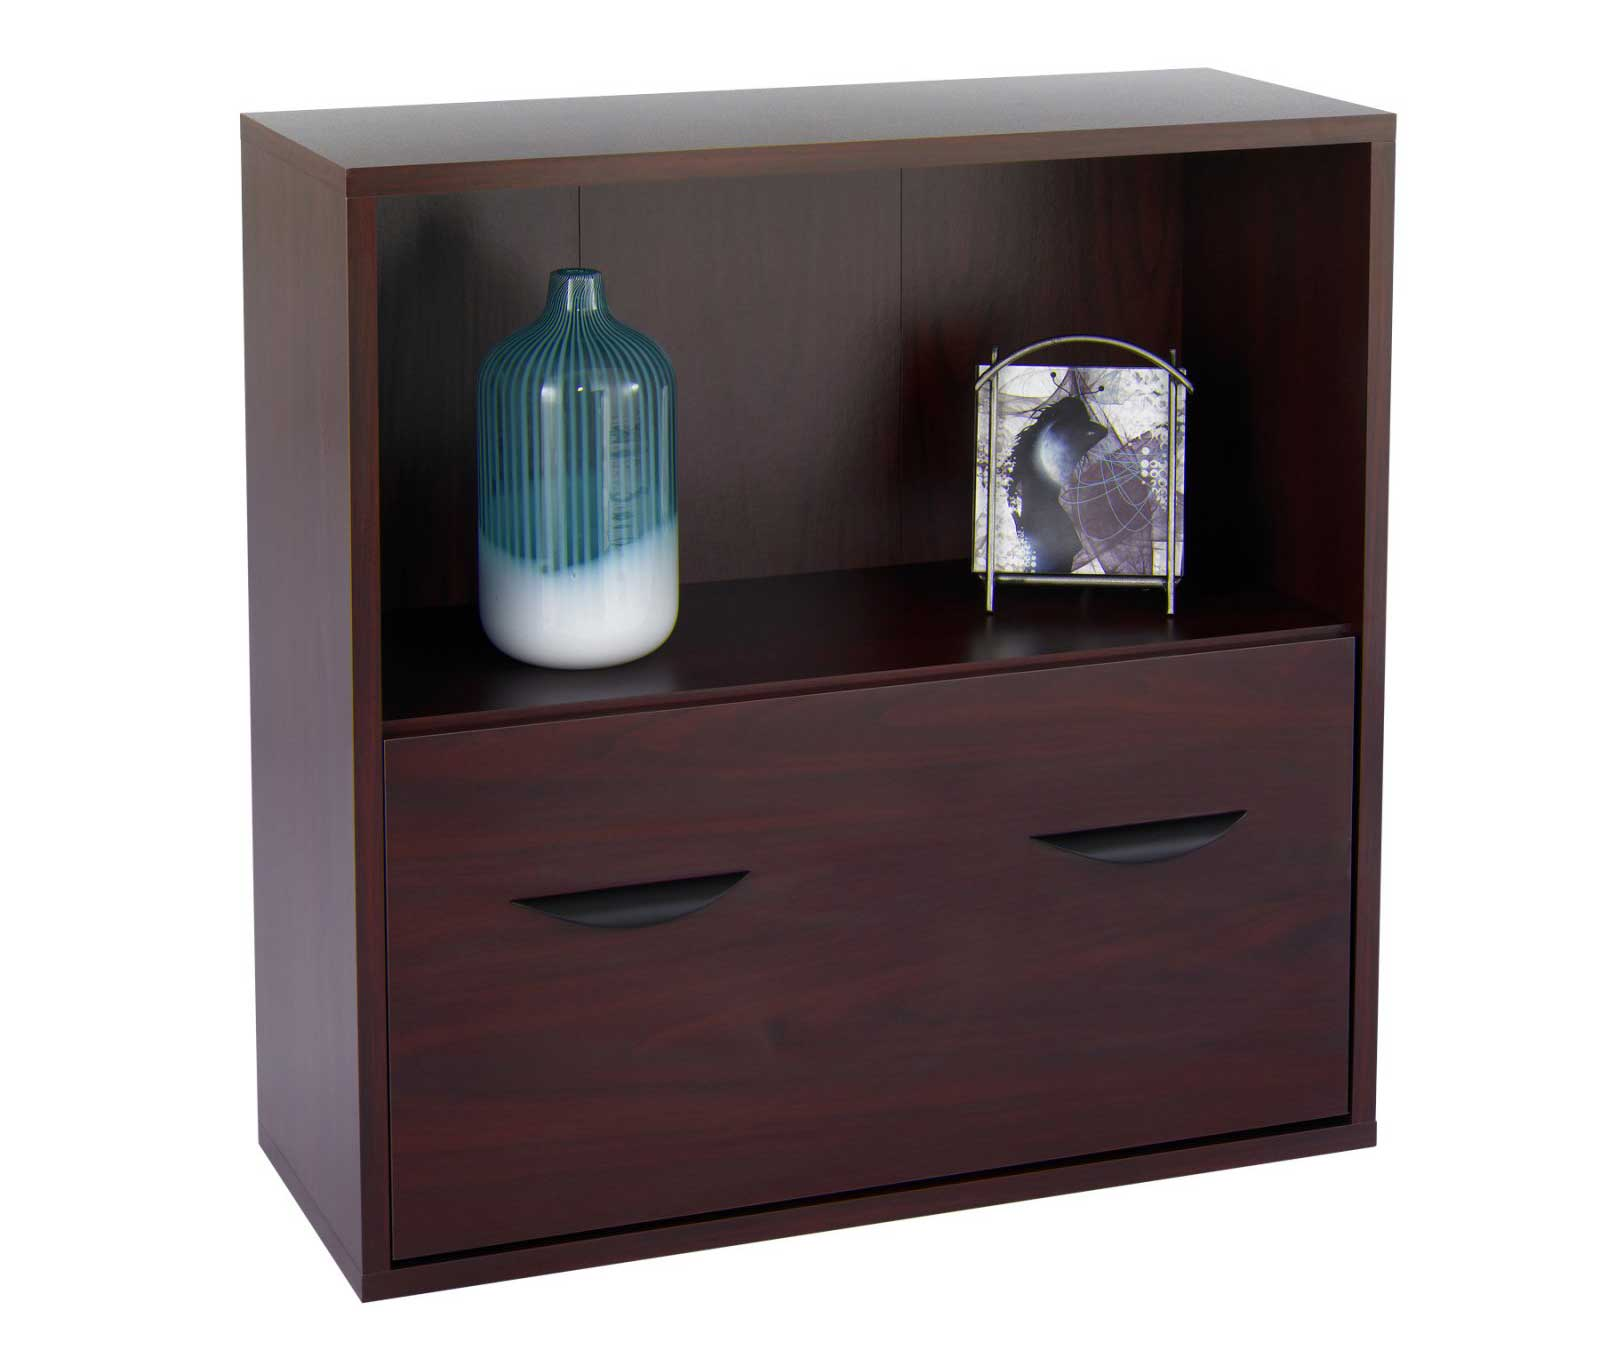 Safco Mahogany Horizontal File Cabinets with Top Bookshelf